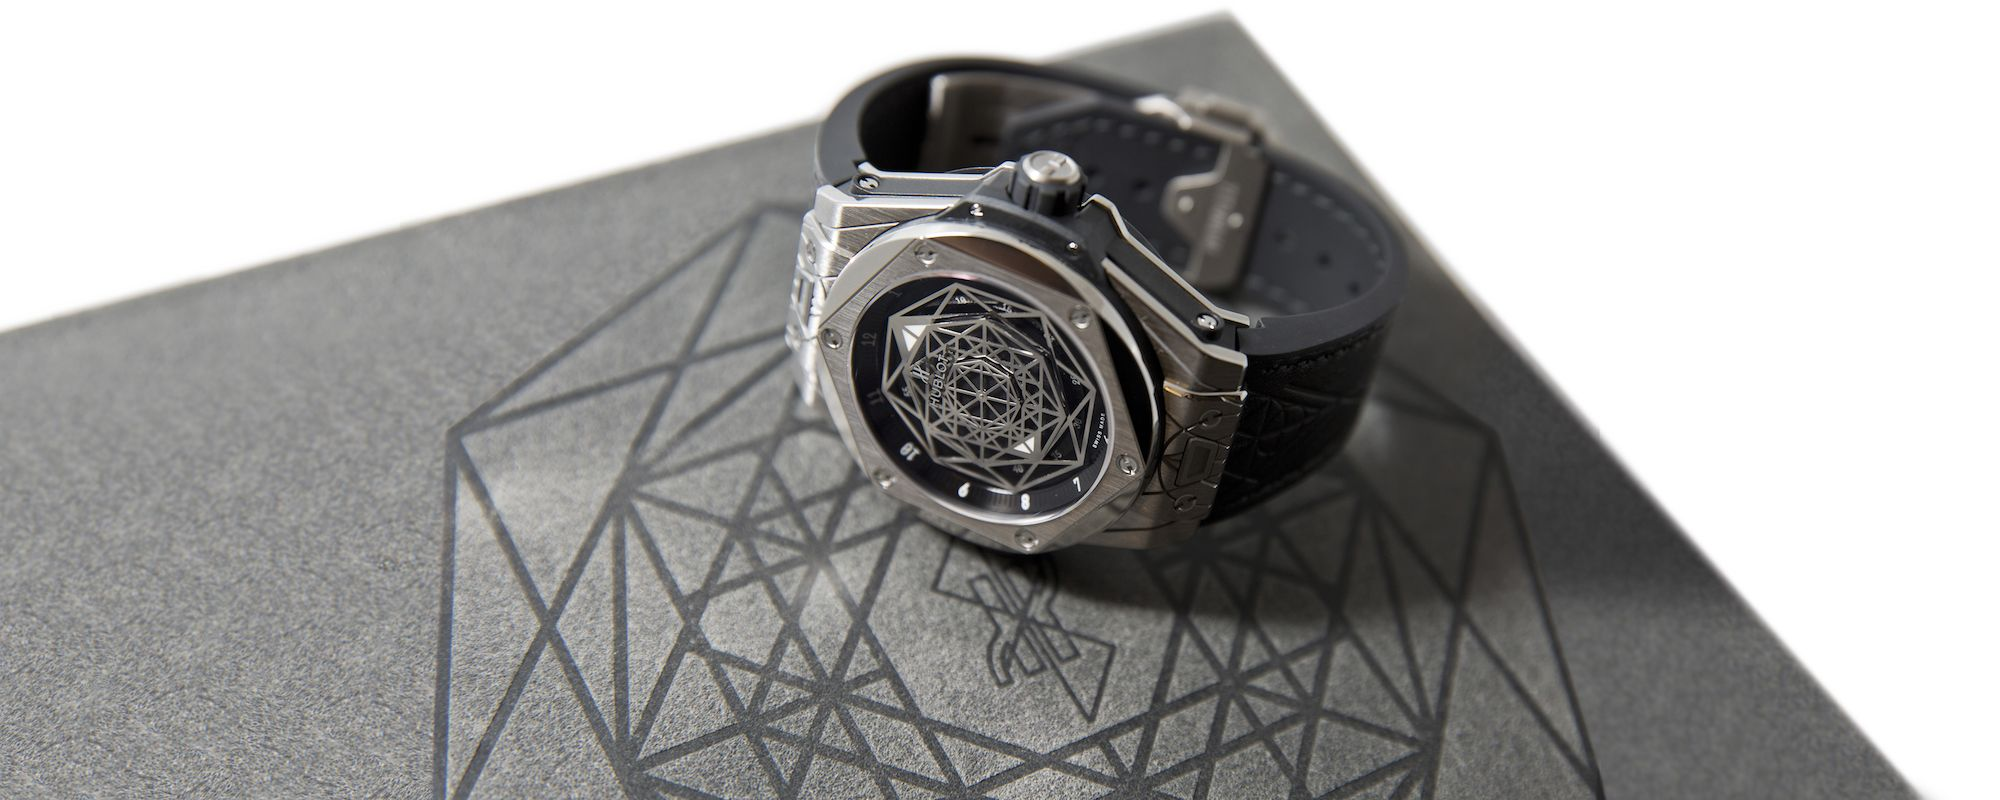 The Tattooist's Time: Hublot Gets Inked With Maxime Büchi